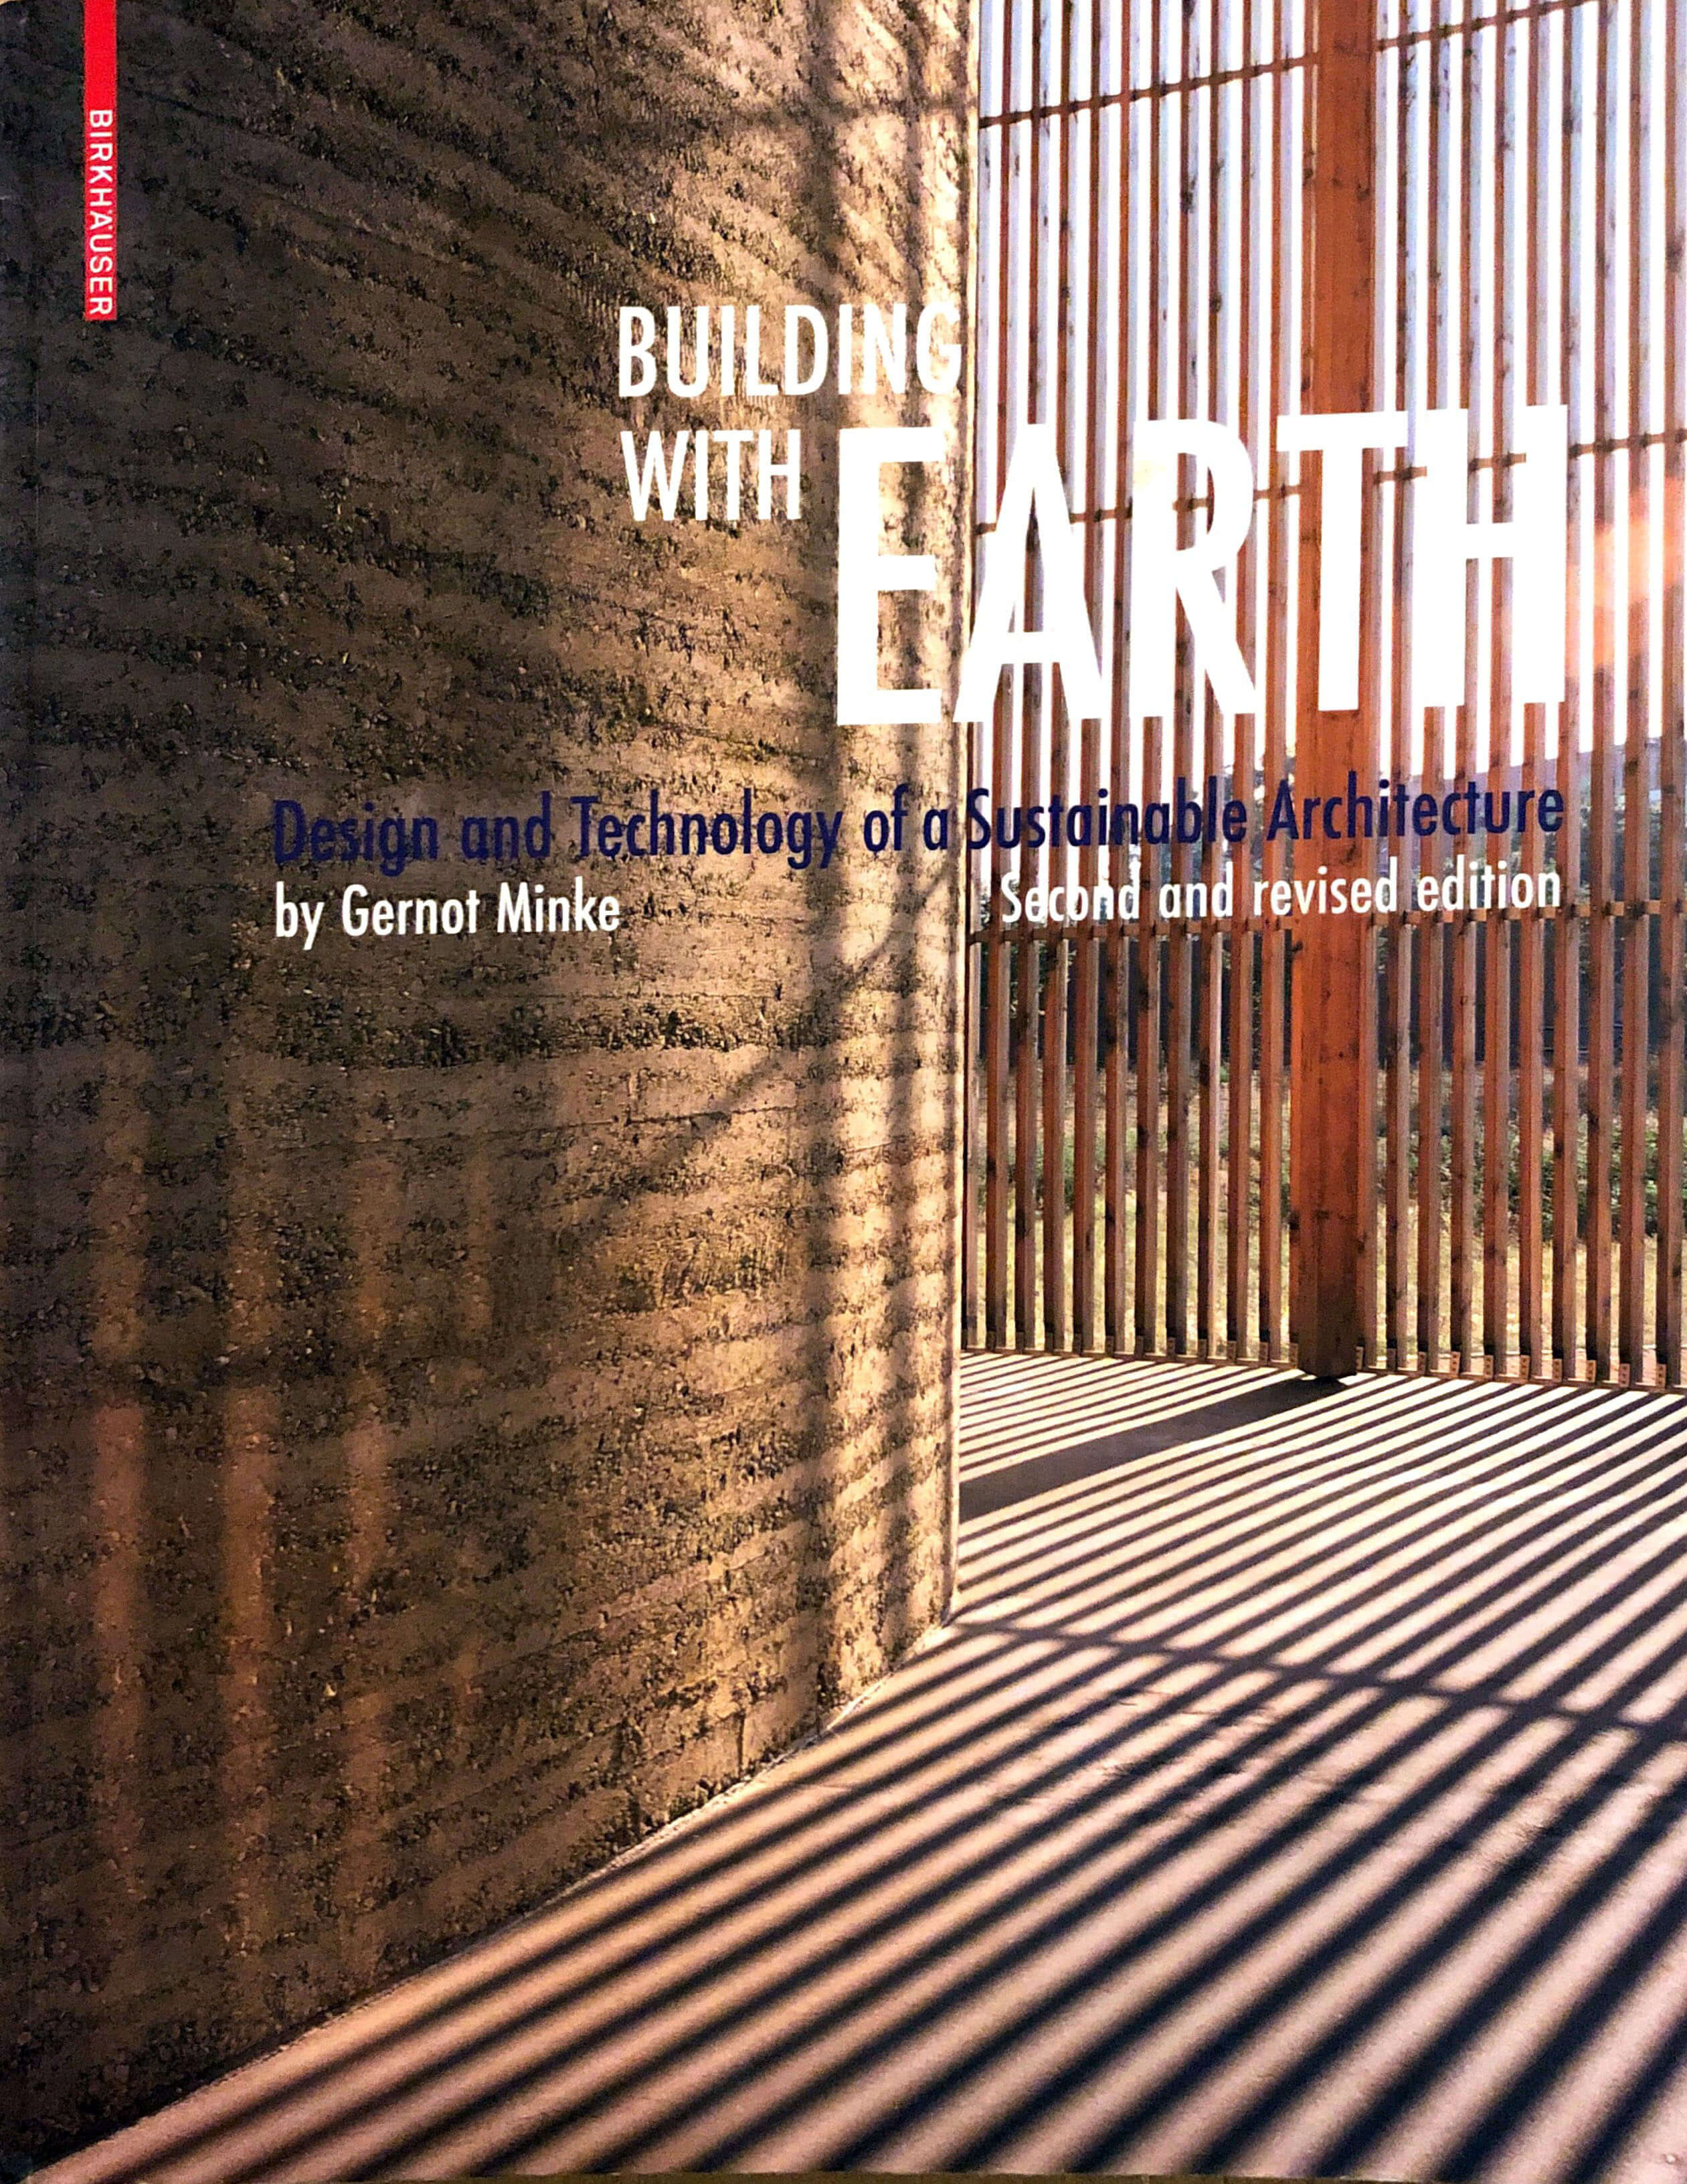 Building with Earth - Casa Terracota